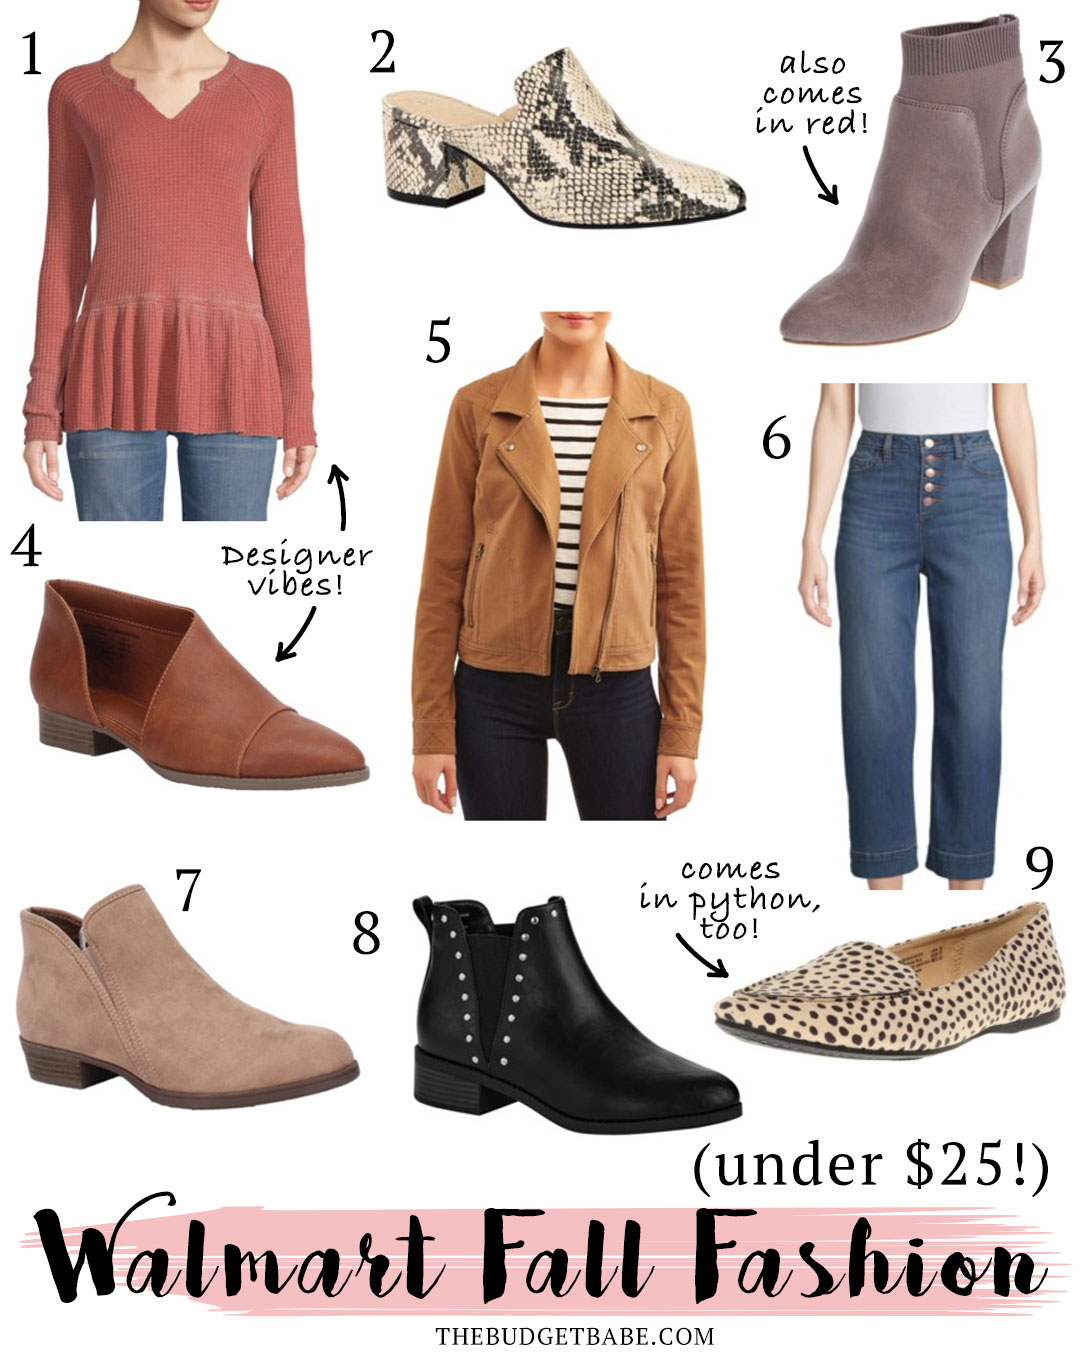 Walmart fall fashion is so good this season! Can't believe all these pieces are $25 or less!